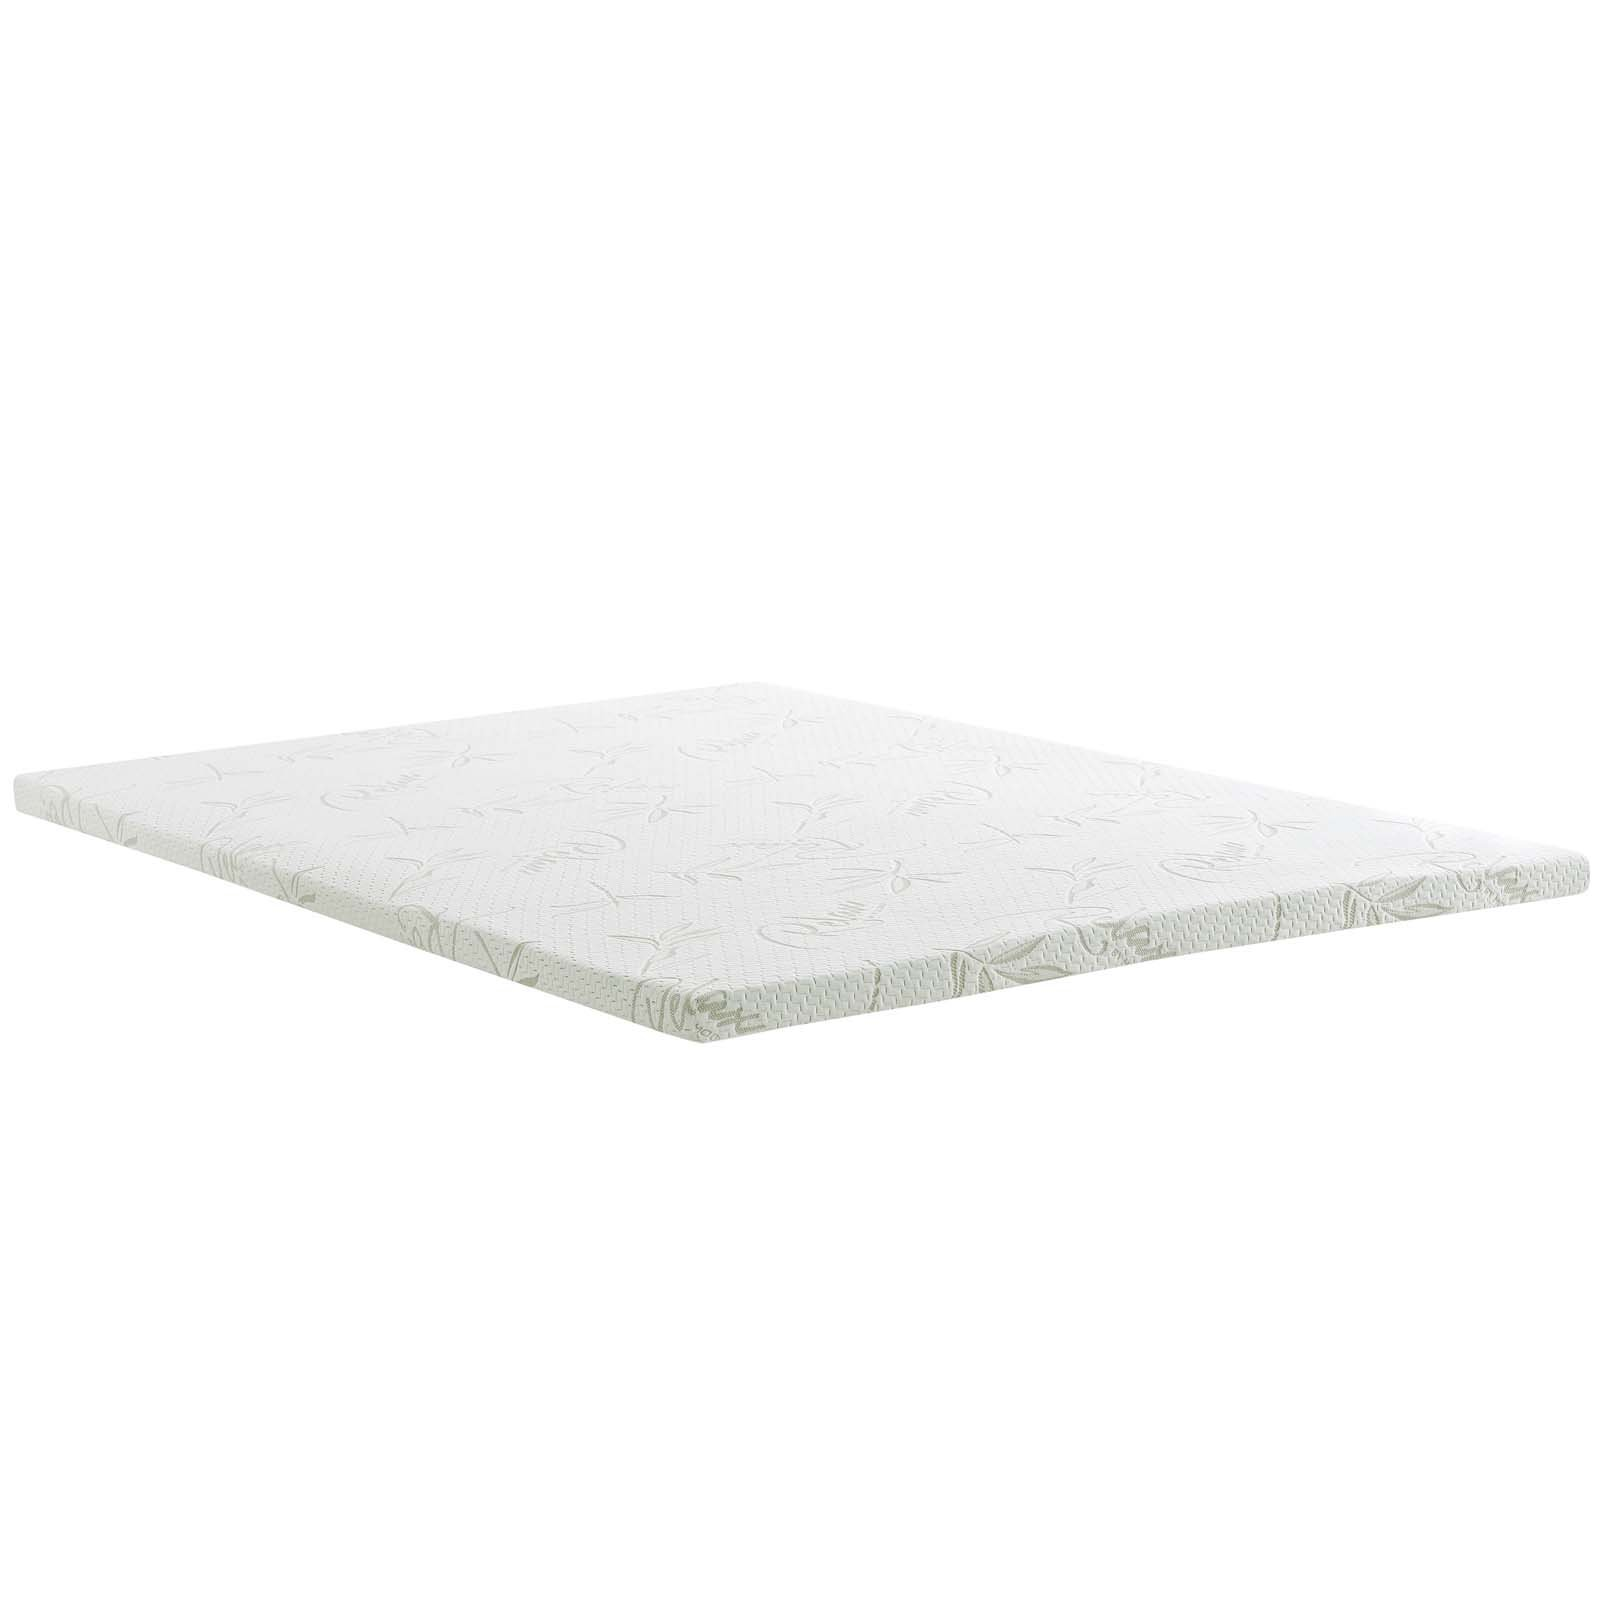 Modway Relax 2'' Inch King Gel-Infused Cooling Certi-PUR US Certified Memory Foam Mattress Topper